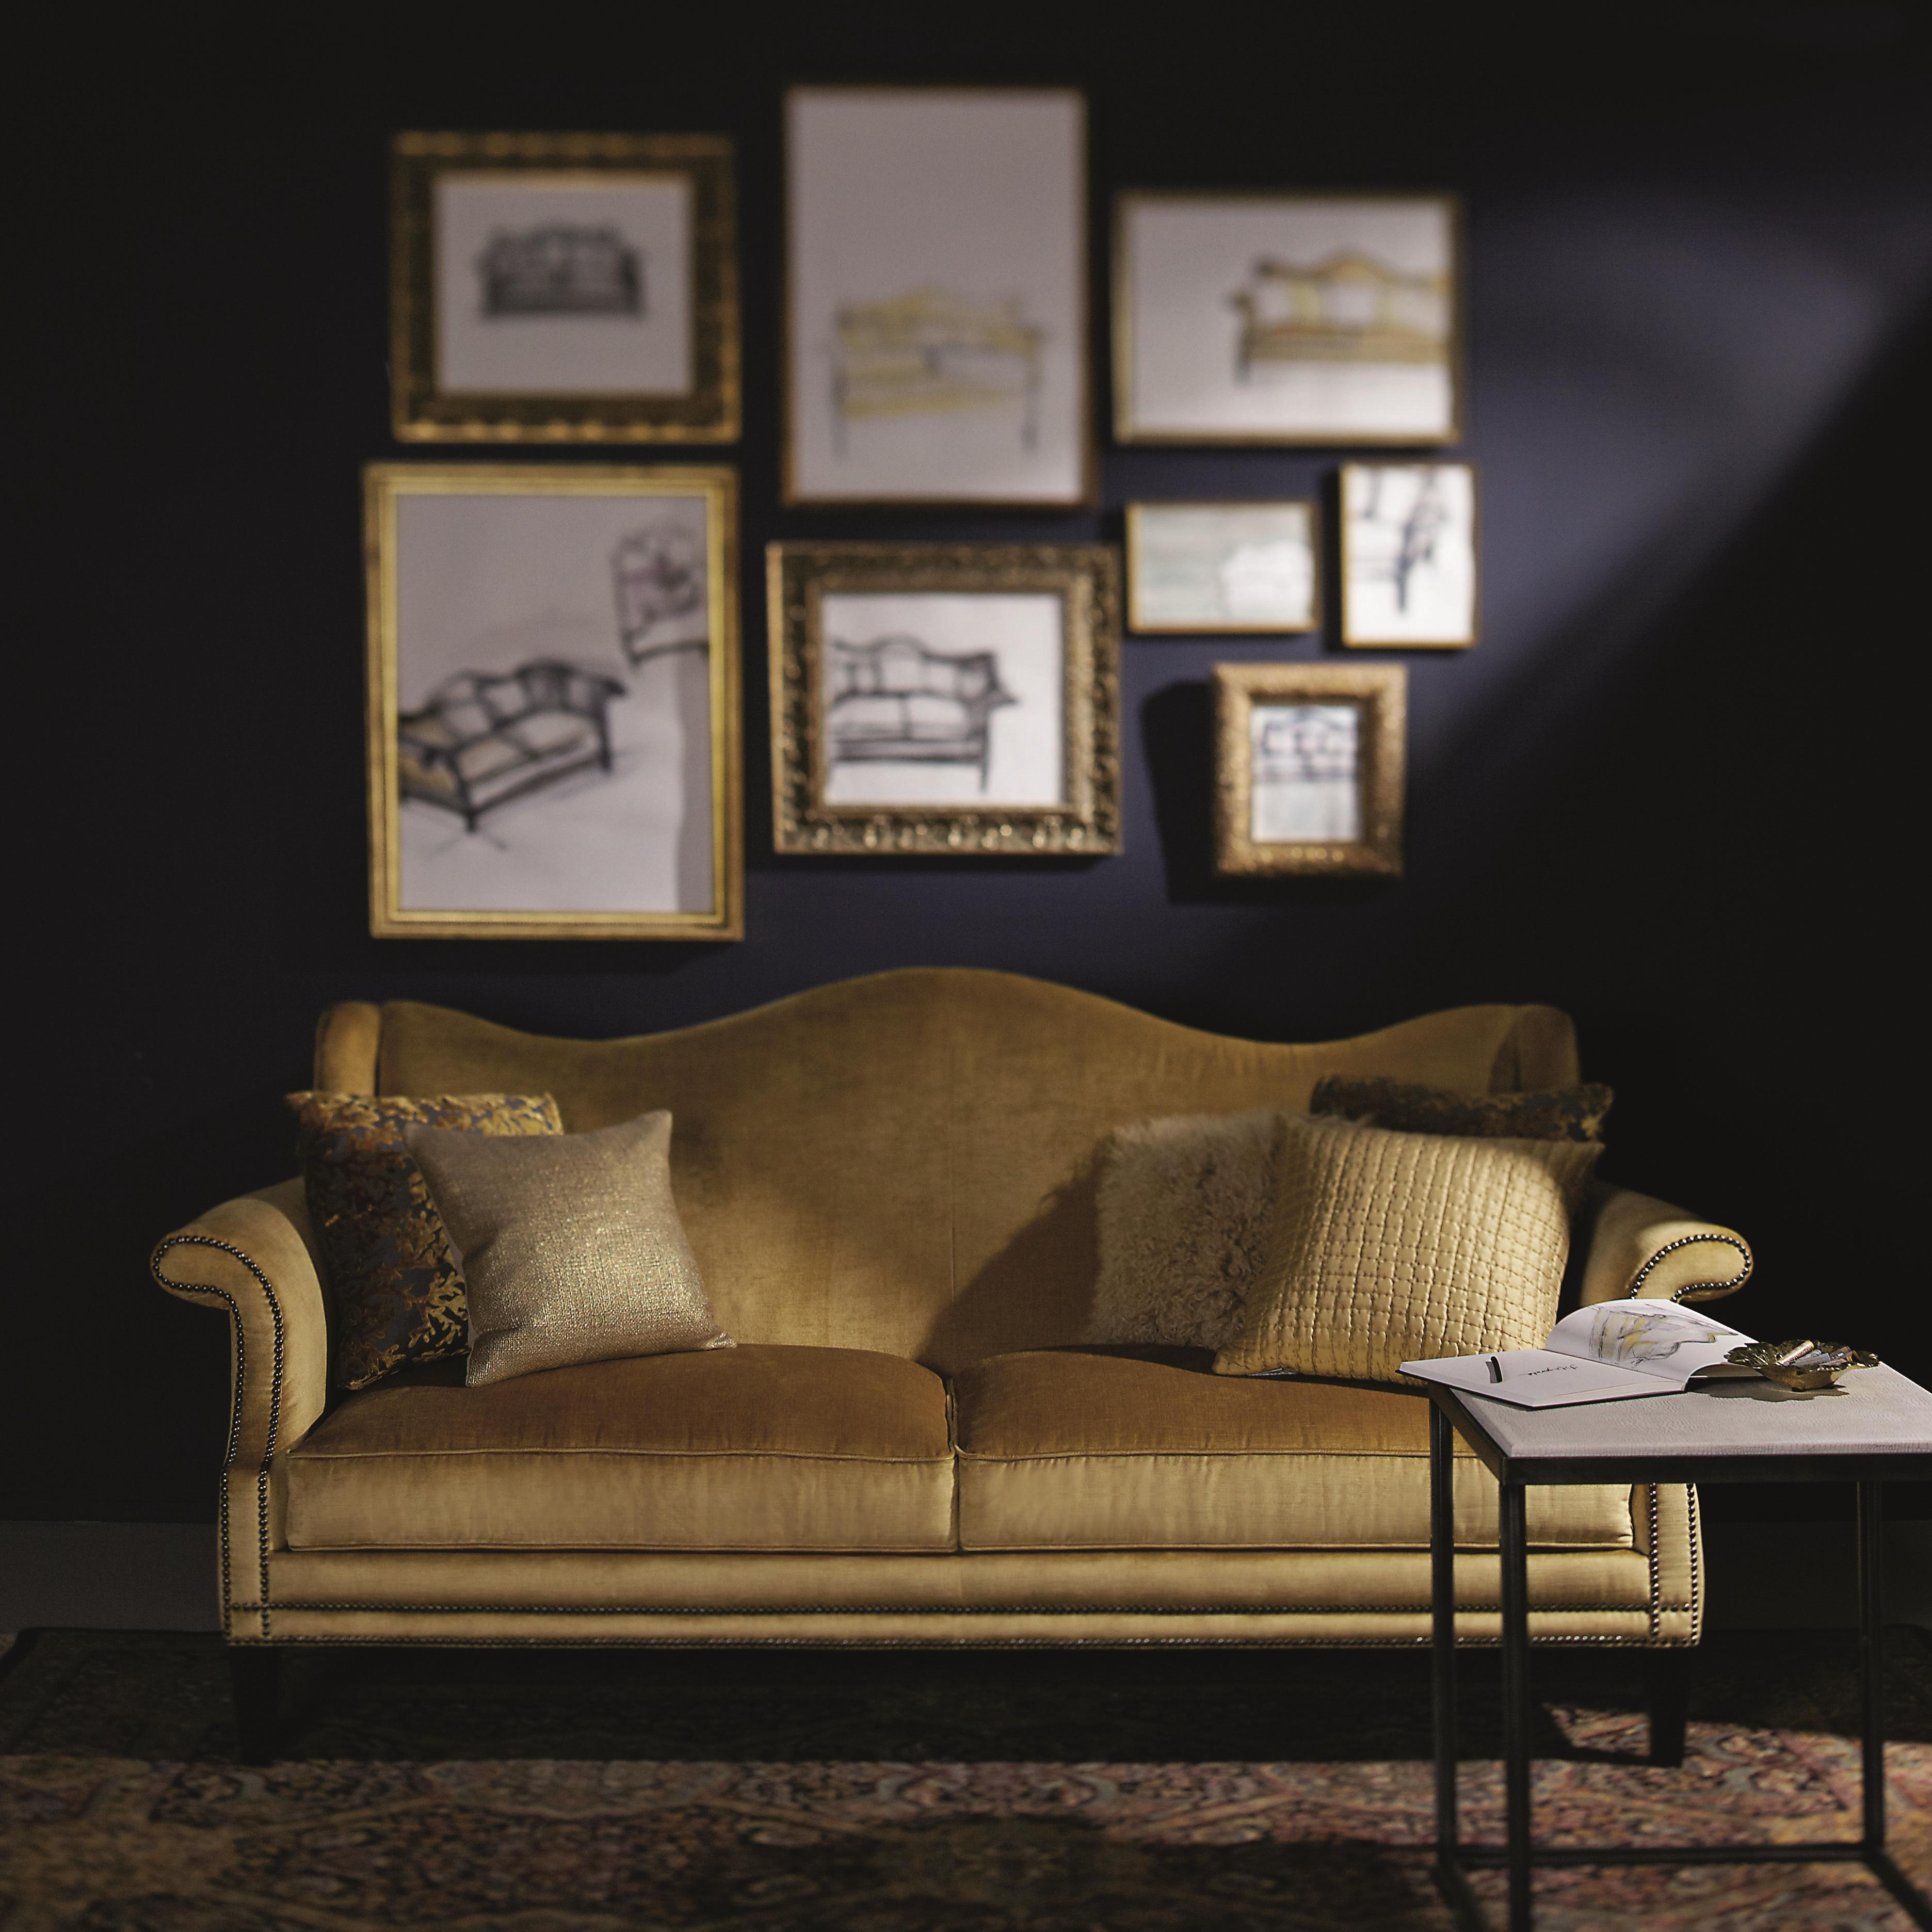 Bernhardt Upholstered Accents Fitzgerald Sofa With Camel Back And Nail Heads Belfort Furniture